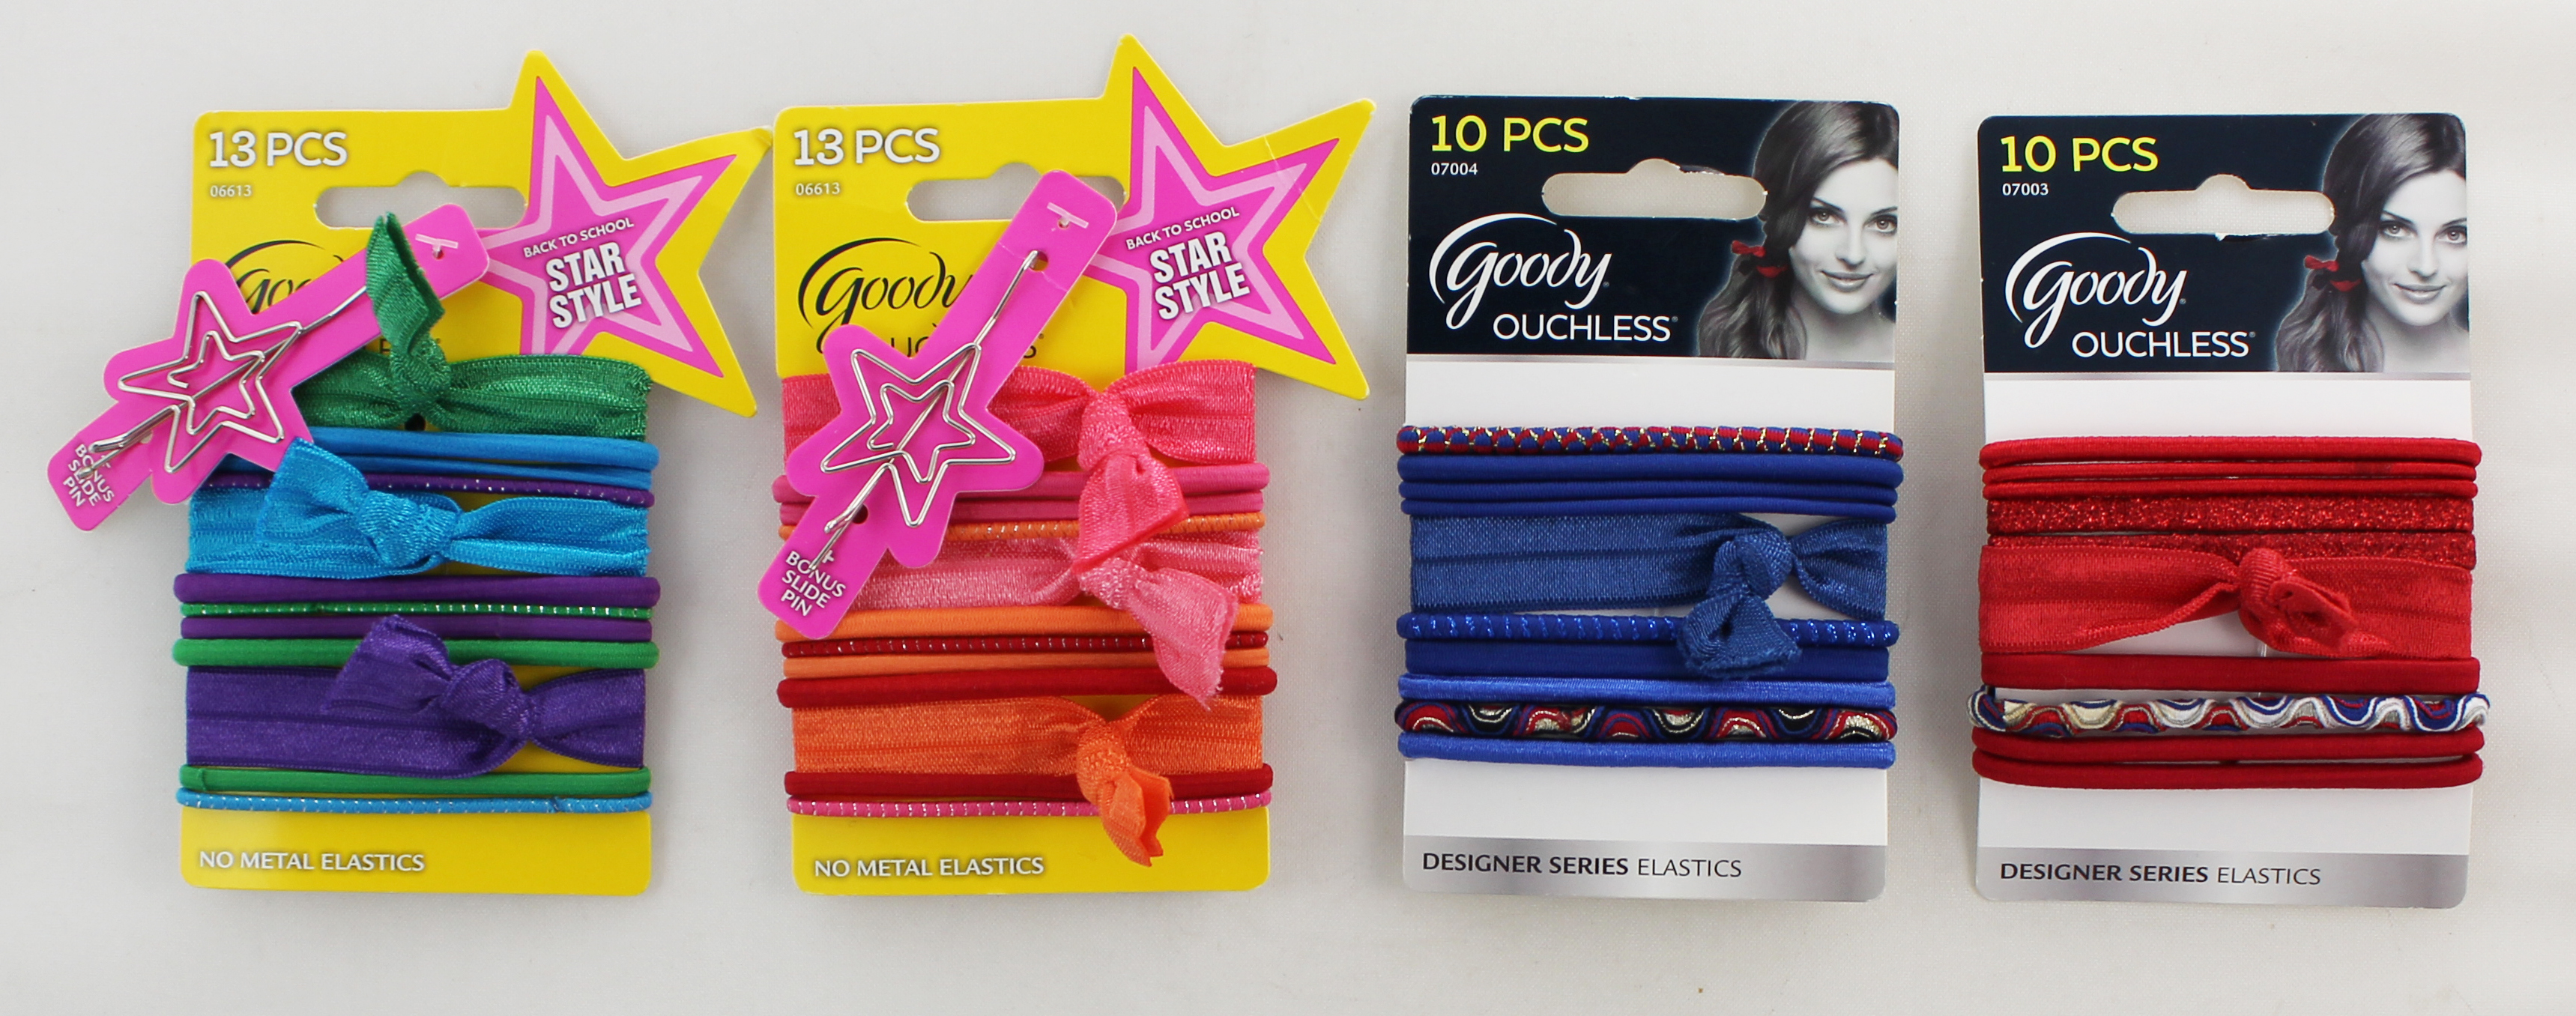 Goody Ouchless Designer Series Elastics/Back to School Star Style Mix